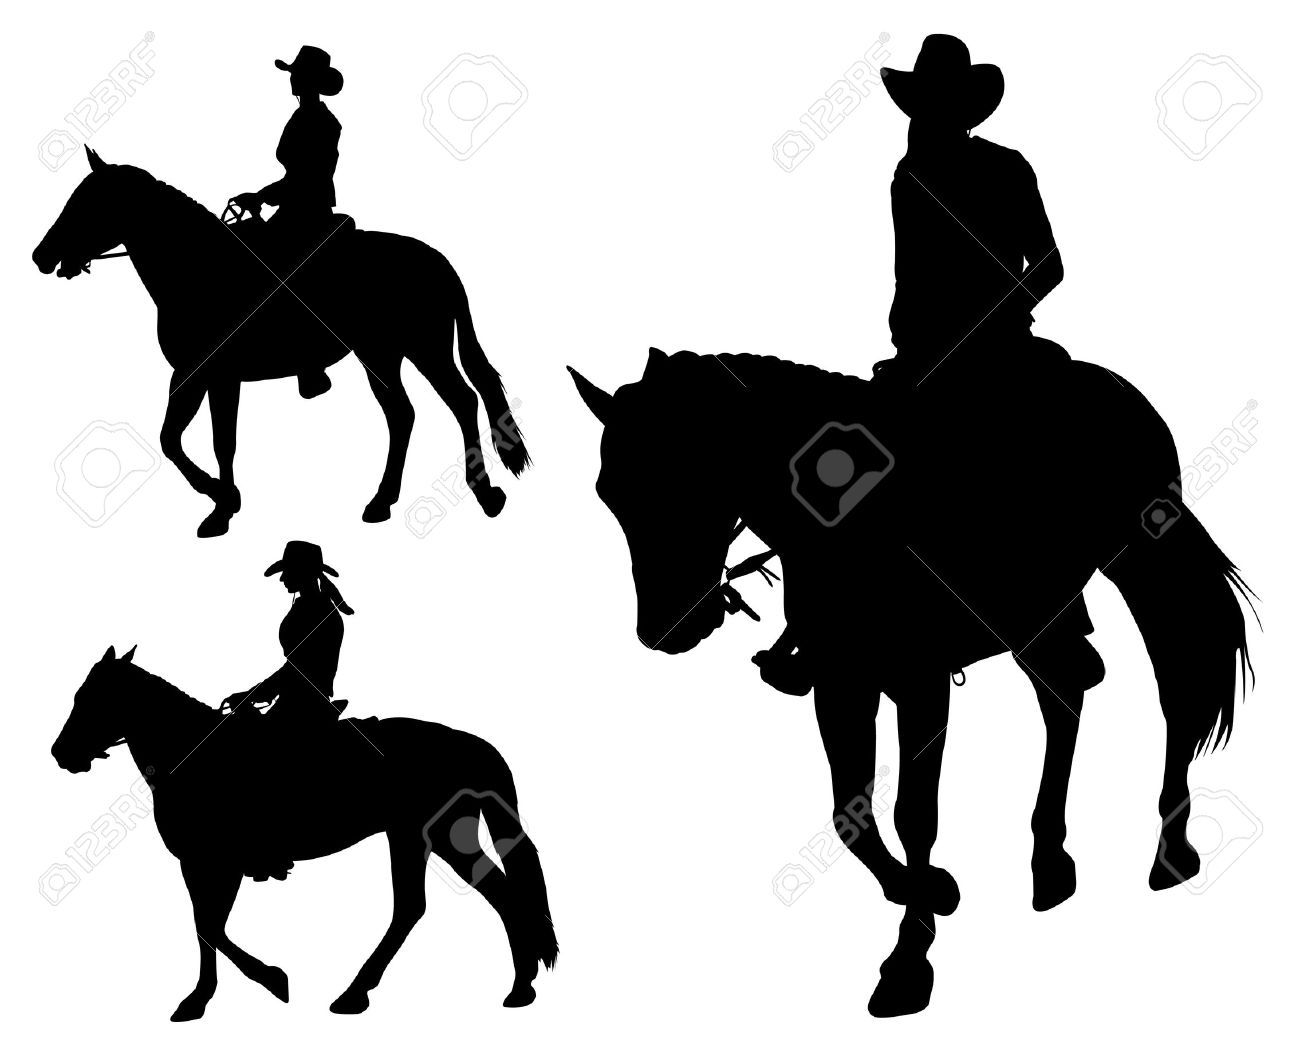 1300x1058 Image Result For Cowgirl Horseback Riding Vector Animal